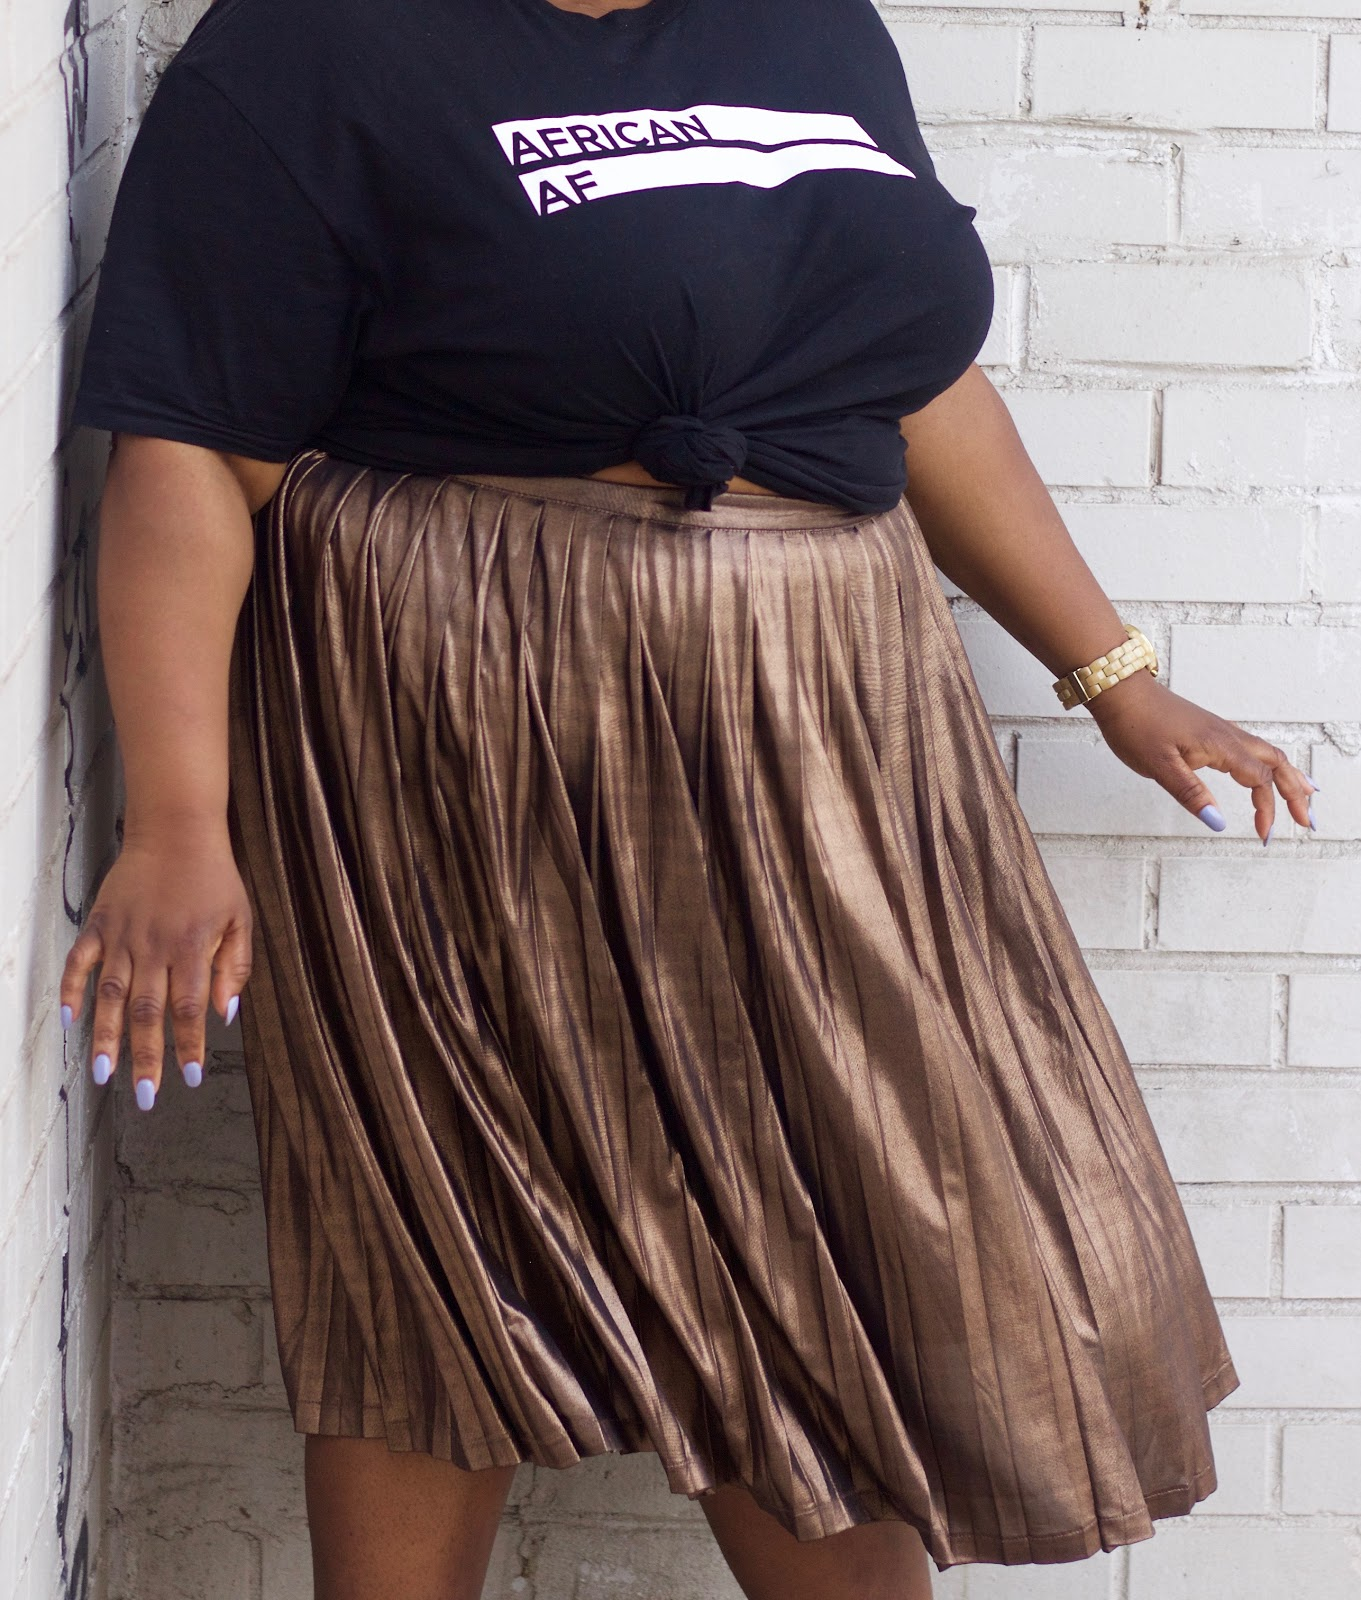 nigerian plus size blogger